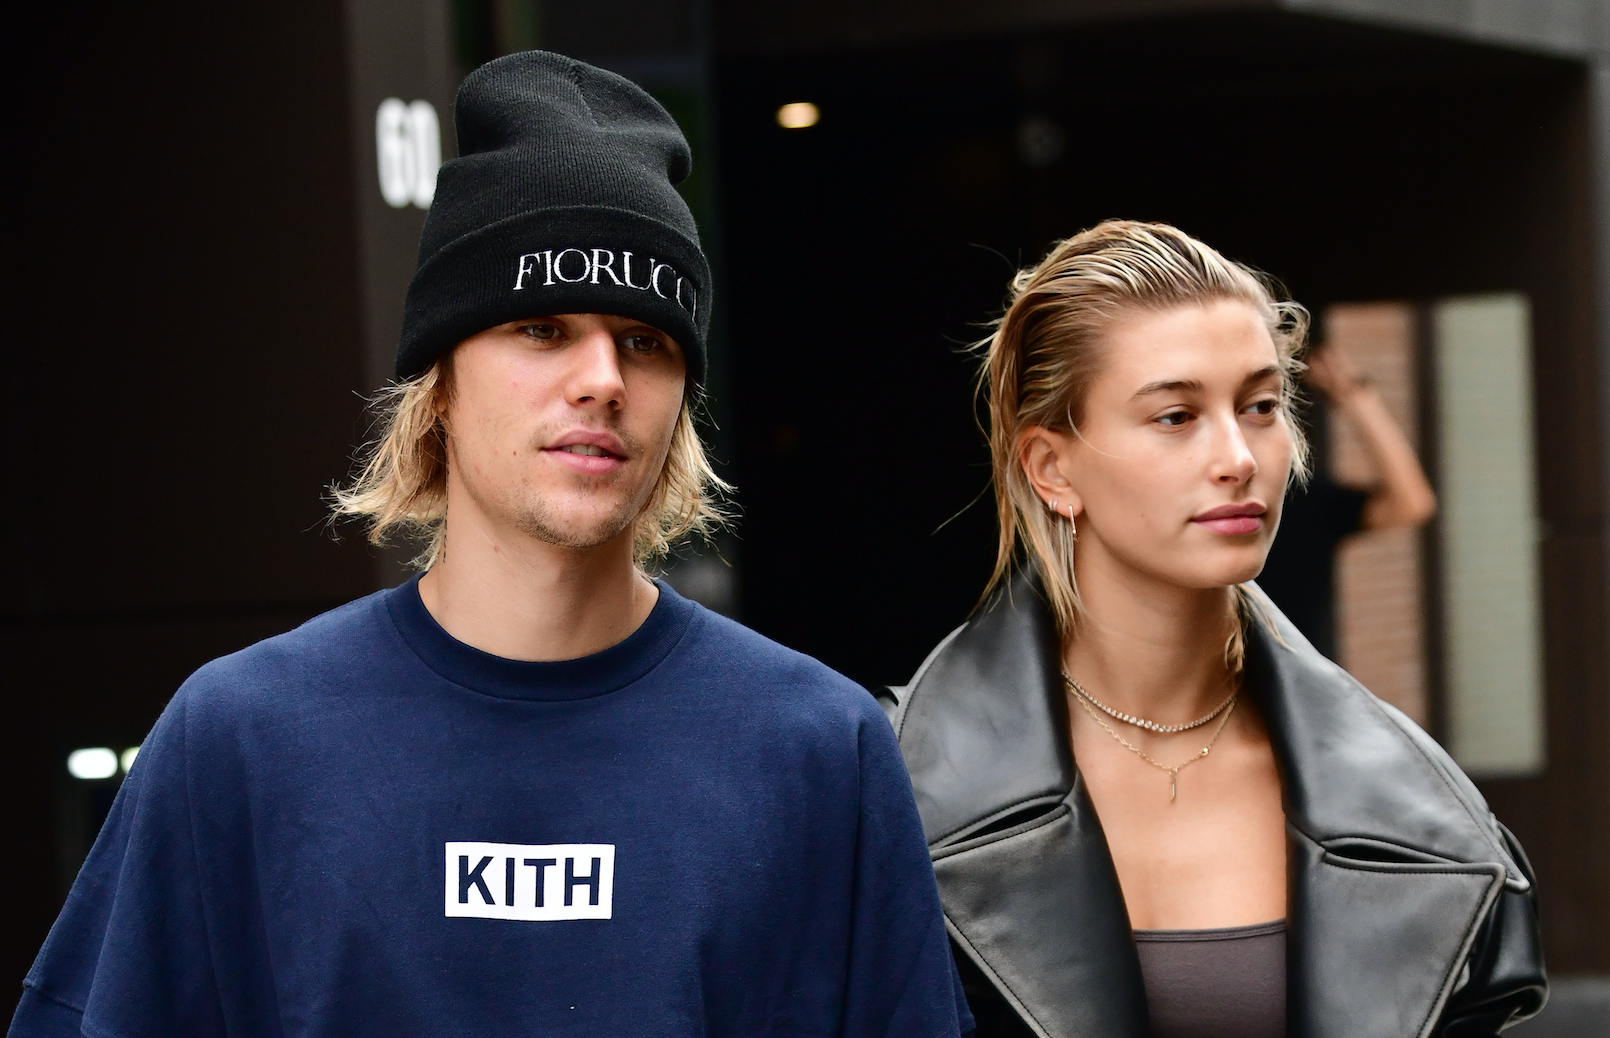 Justin Bieber and Hailey Baldwin Postpone Wedding Again: 'They Want It to Be Perfect'